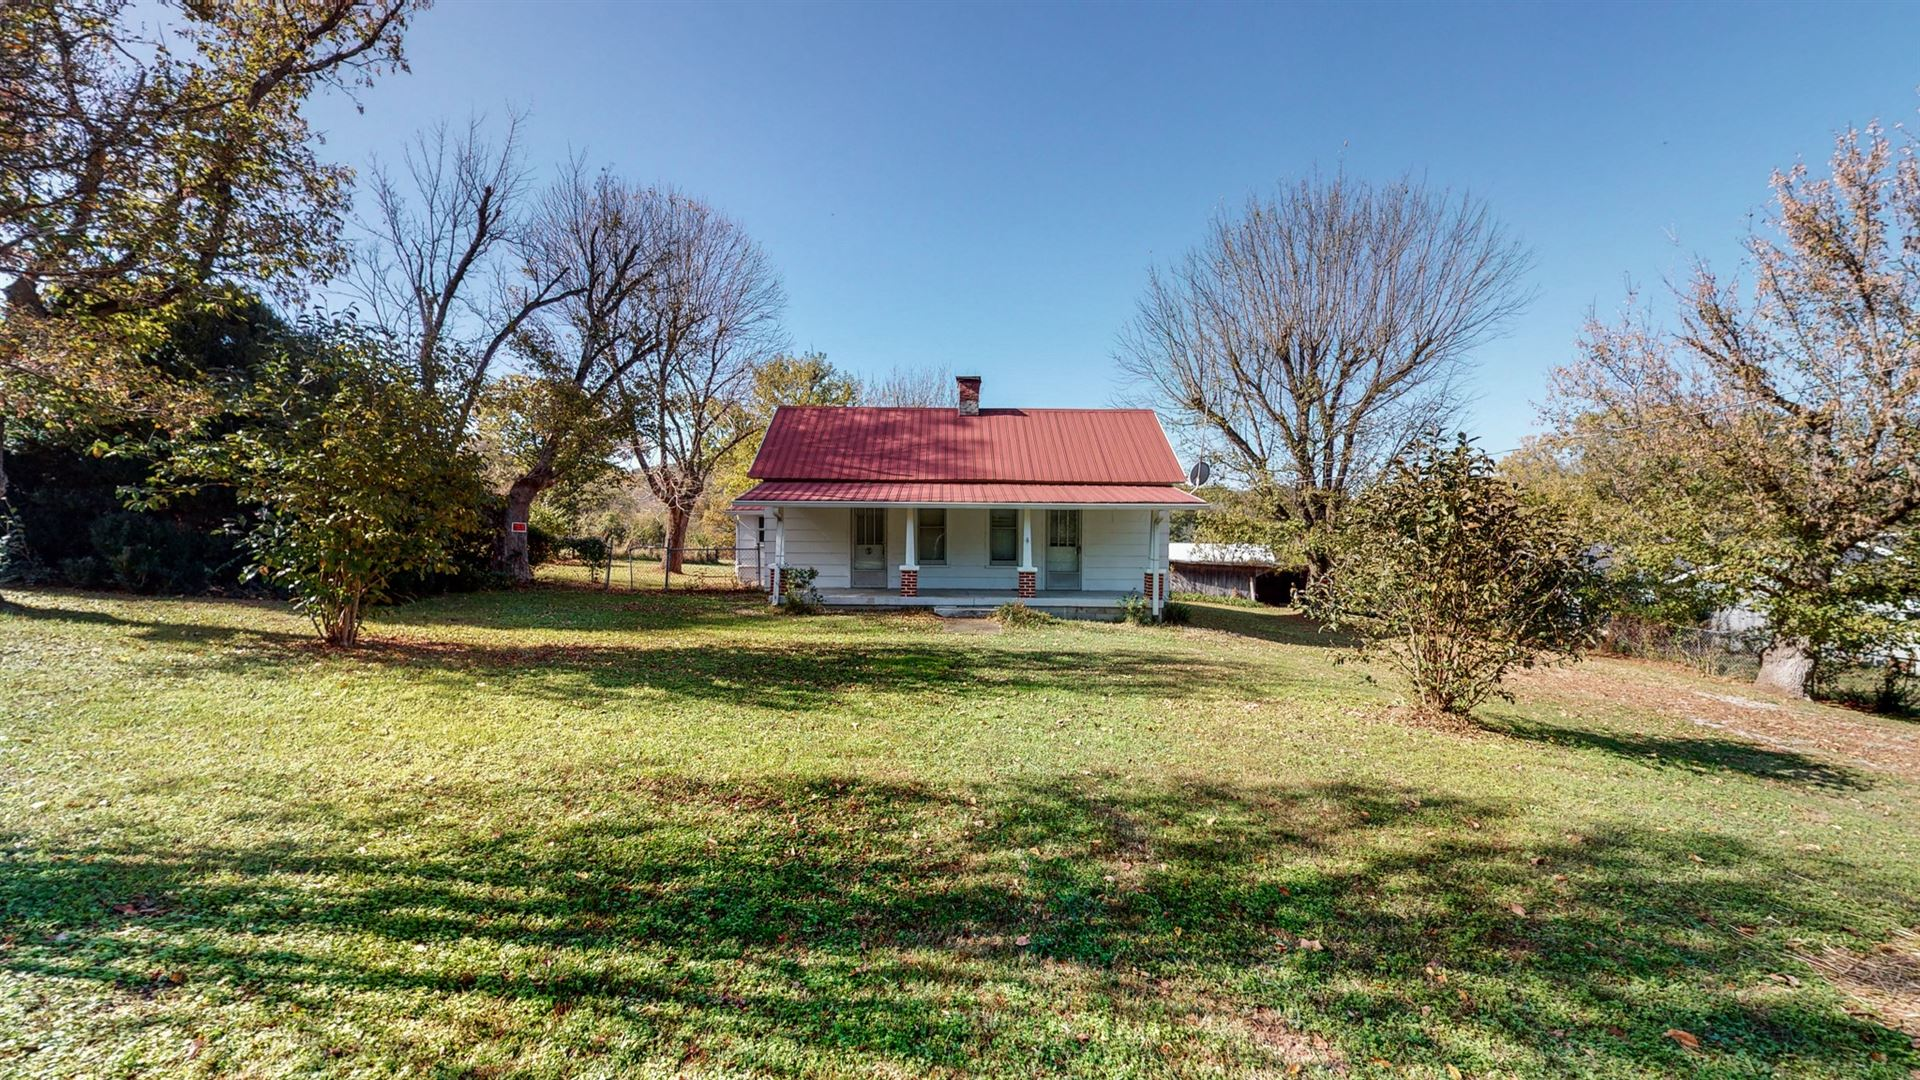 1950 Burke Hollow Rd, Nolensville, TN 37135 - MLS#: 2205350